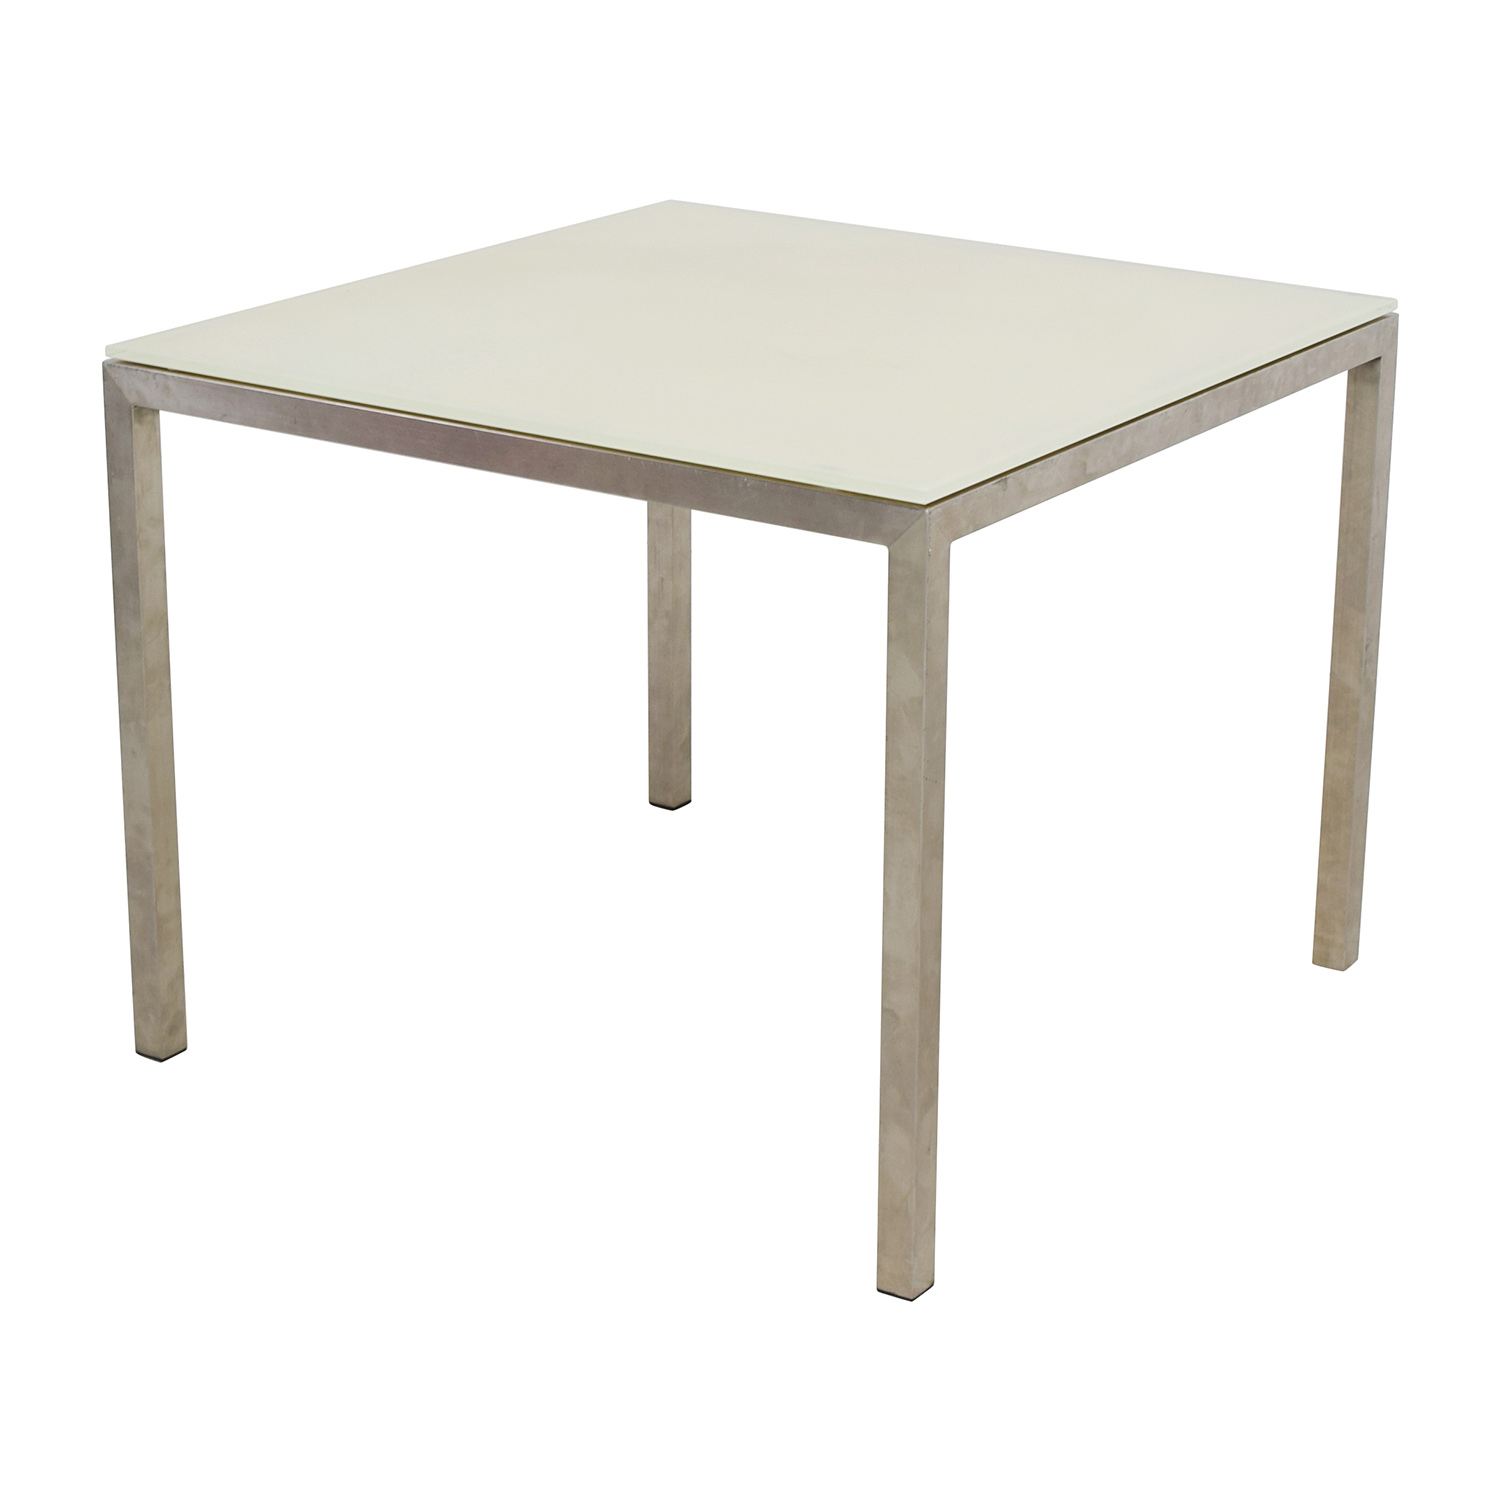 Room & Board Portia White Glass and Stainless Steel Dining Table Room and Board